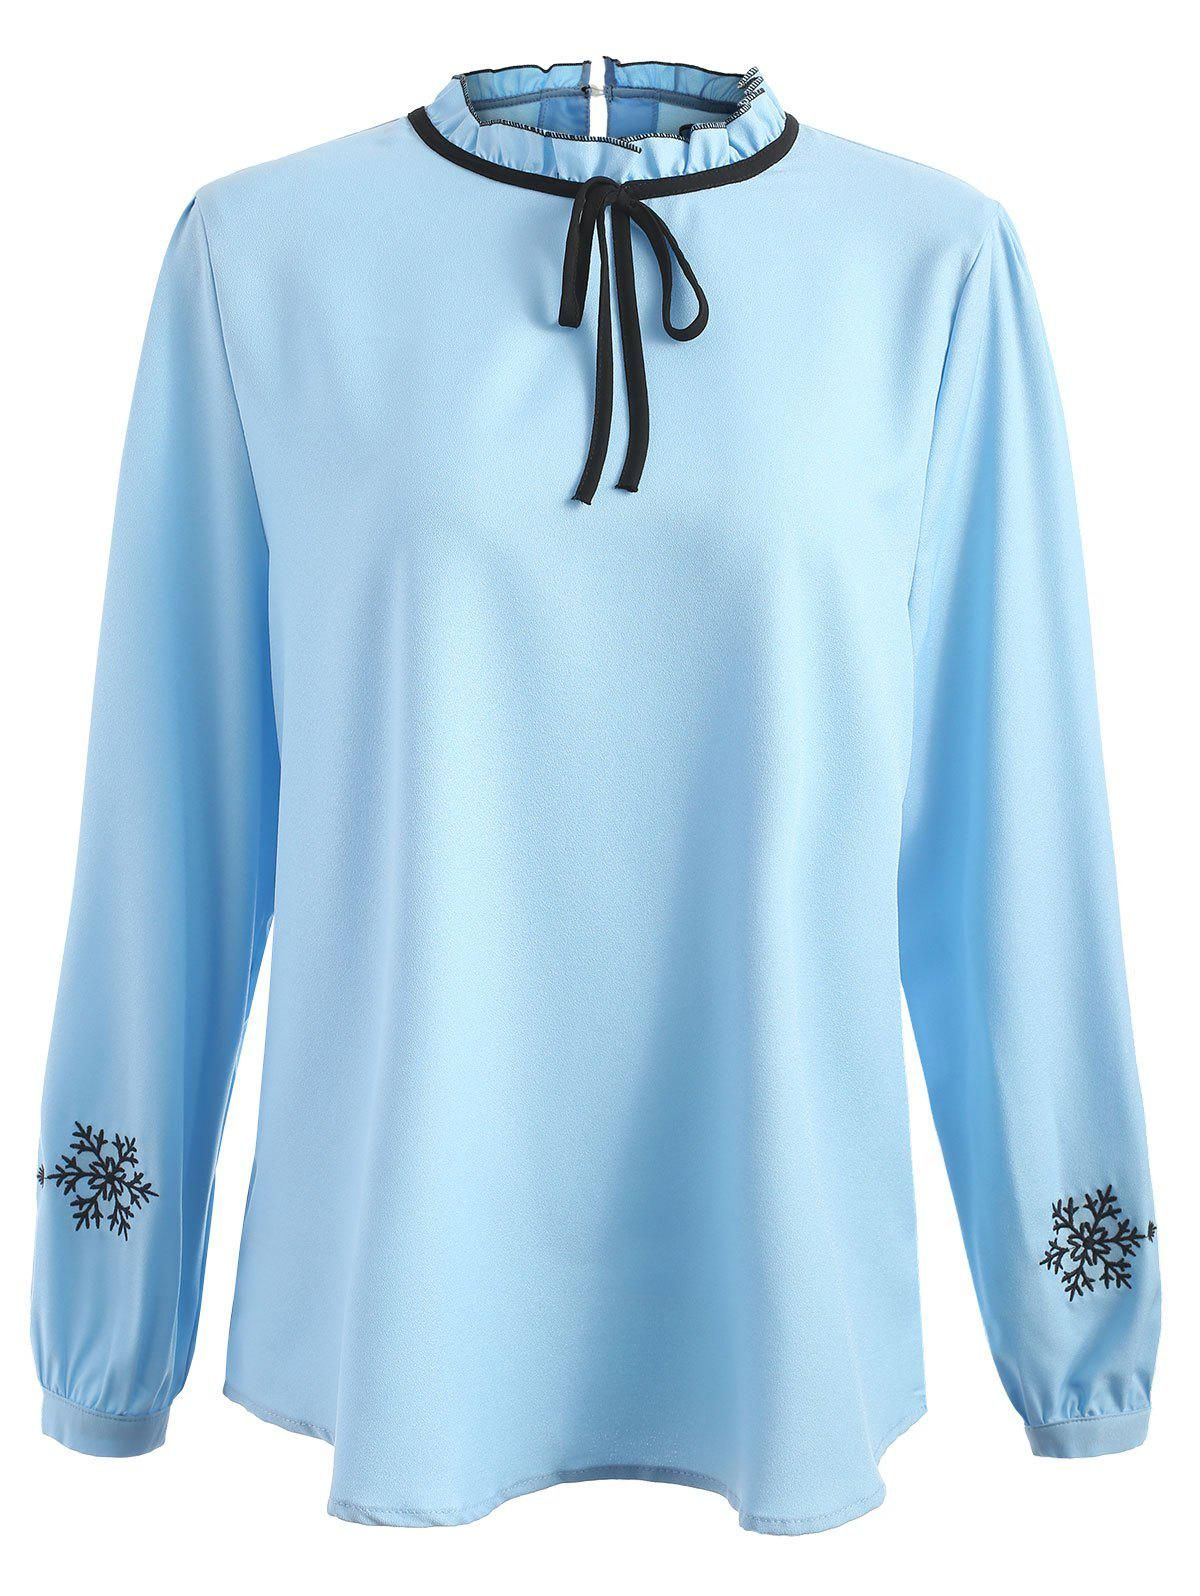 Trendy Plus Size Snowflake Embroidery Ruffle Trim Blouse